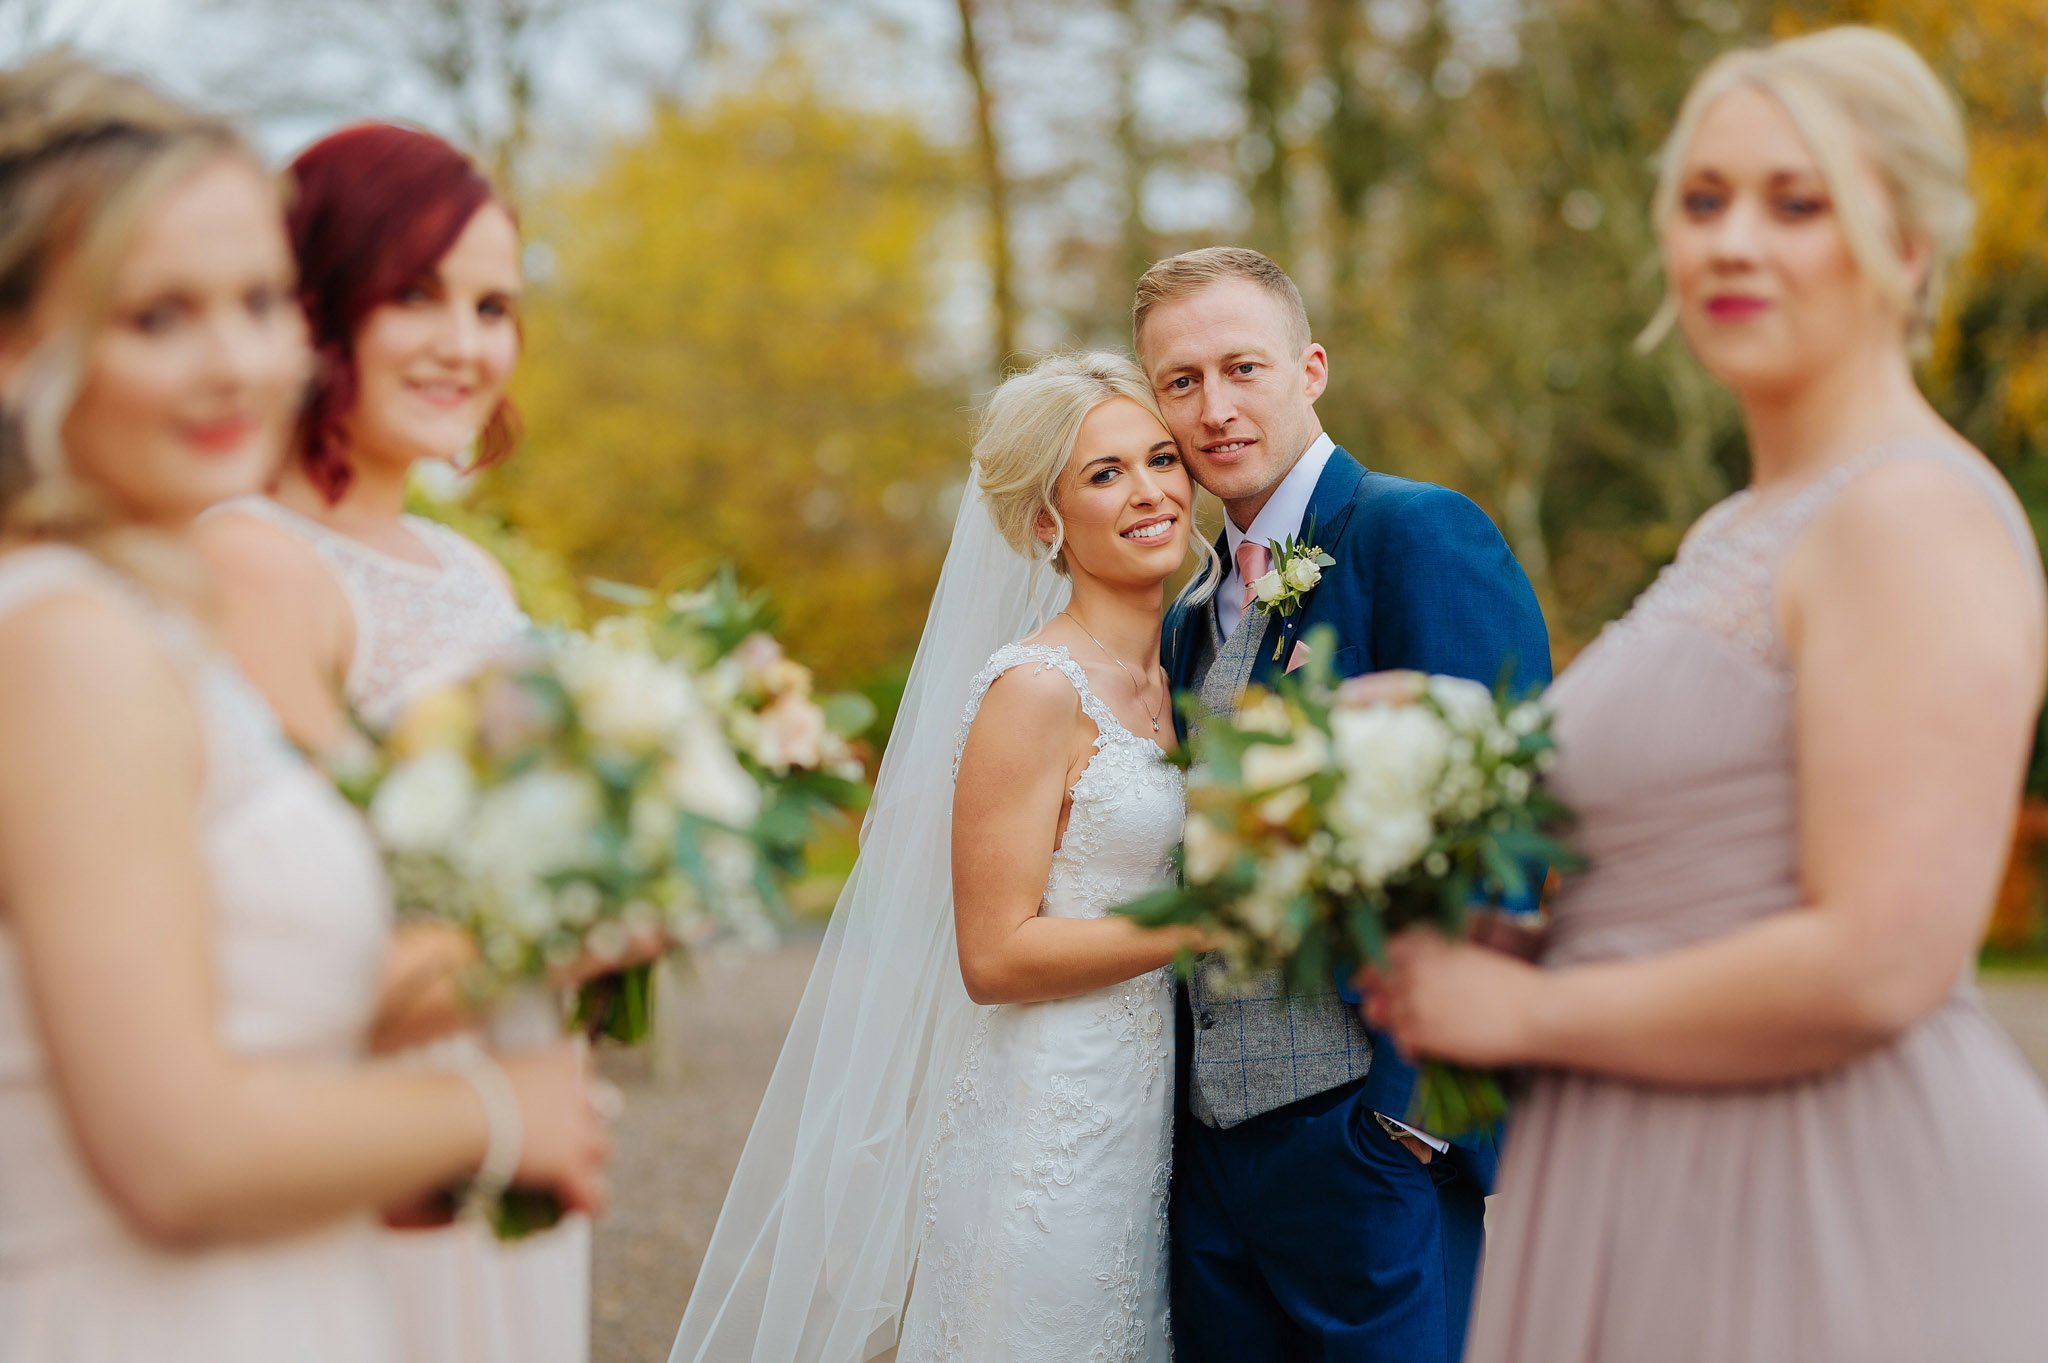 lemore manor wedding herefordshire 74 - Lemore Manor wedding, Herefordshire - West Midlands | Sadie + Ken